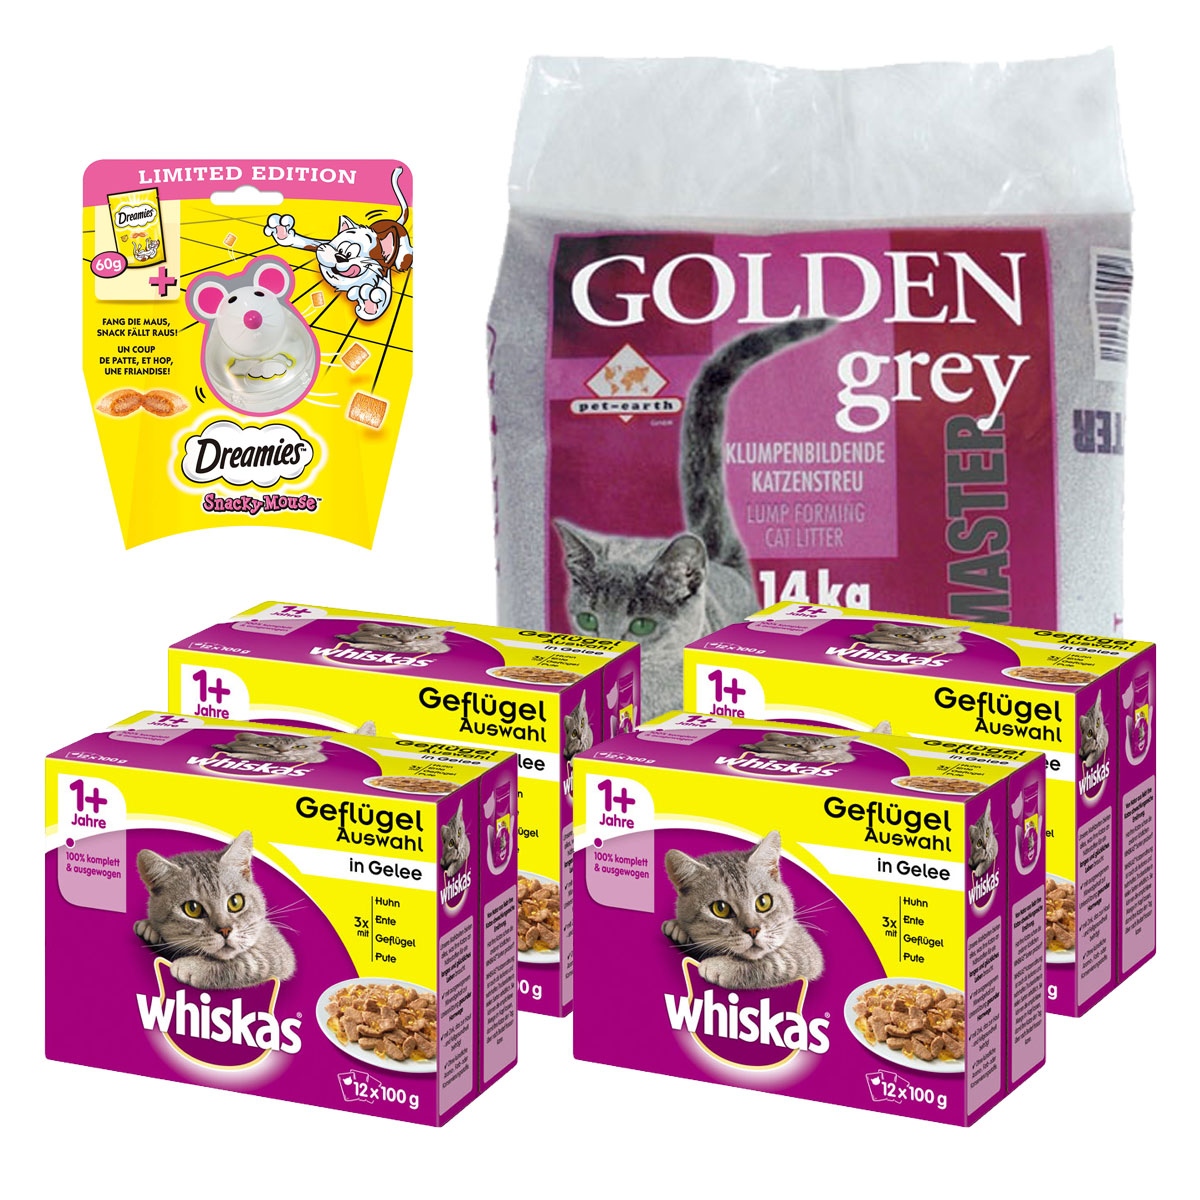 sparpack whiskas katzenfutter golden grey katzenstreu dreamies katzensnack. Black Bedroom Furniture Sets. Home Design Ideas